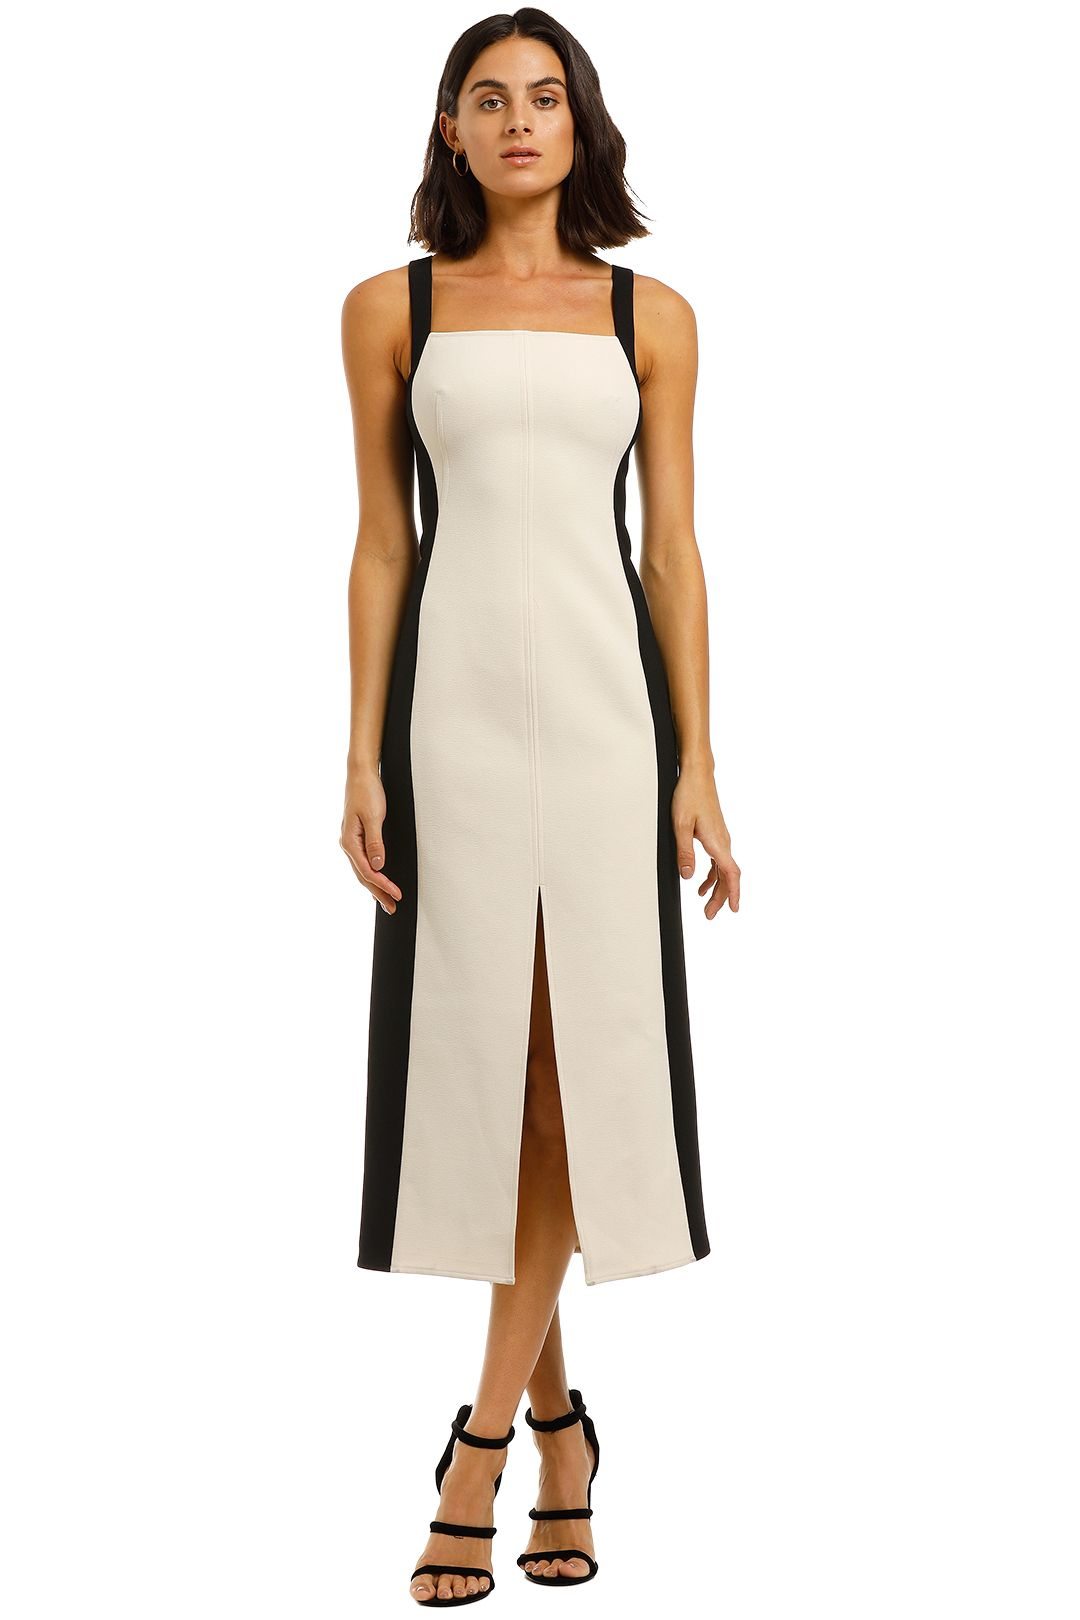 CMEO-Collective-Consumed-Sleeveless-Midi-Dress-Front